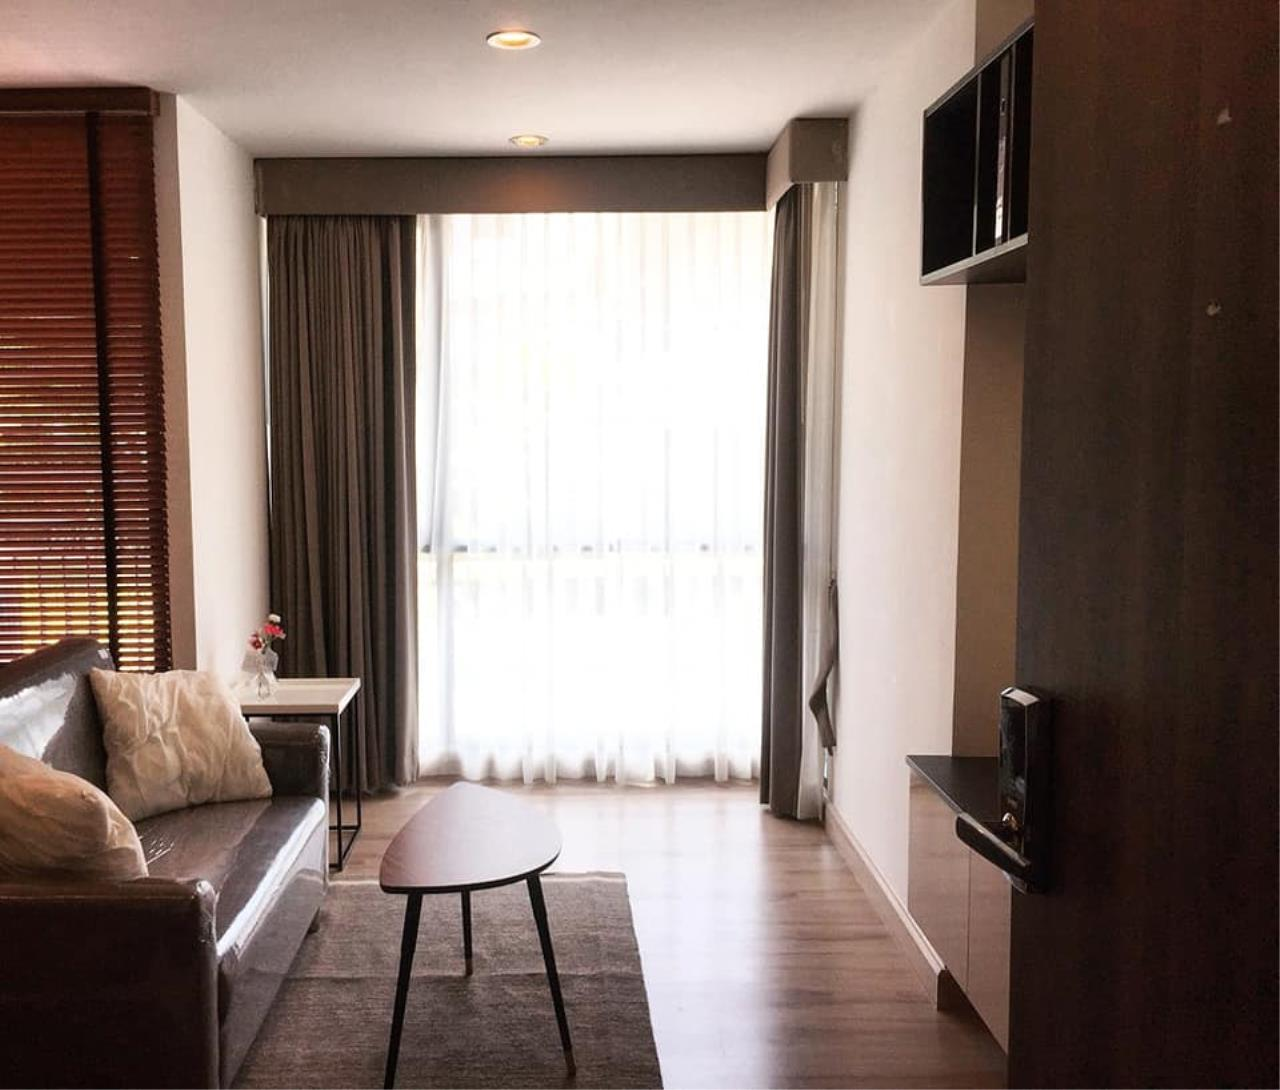 Agent - Prombood Agency's Sale - 1 Bedroom 36.5 sq.m. The Unique 19 near Ratchadapisek and Ladprao MRT Station 3